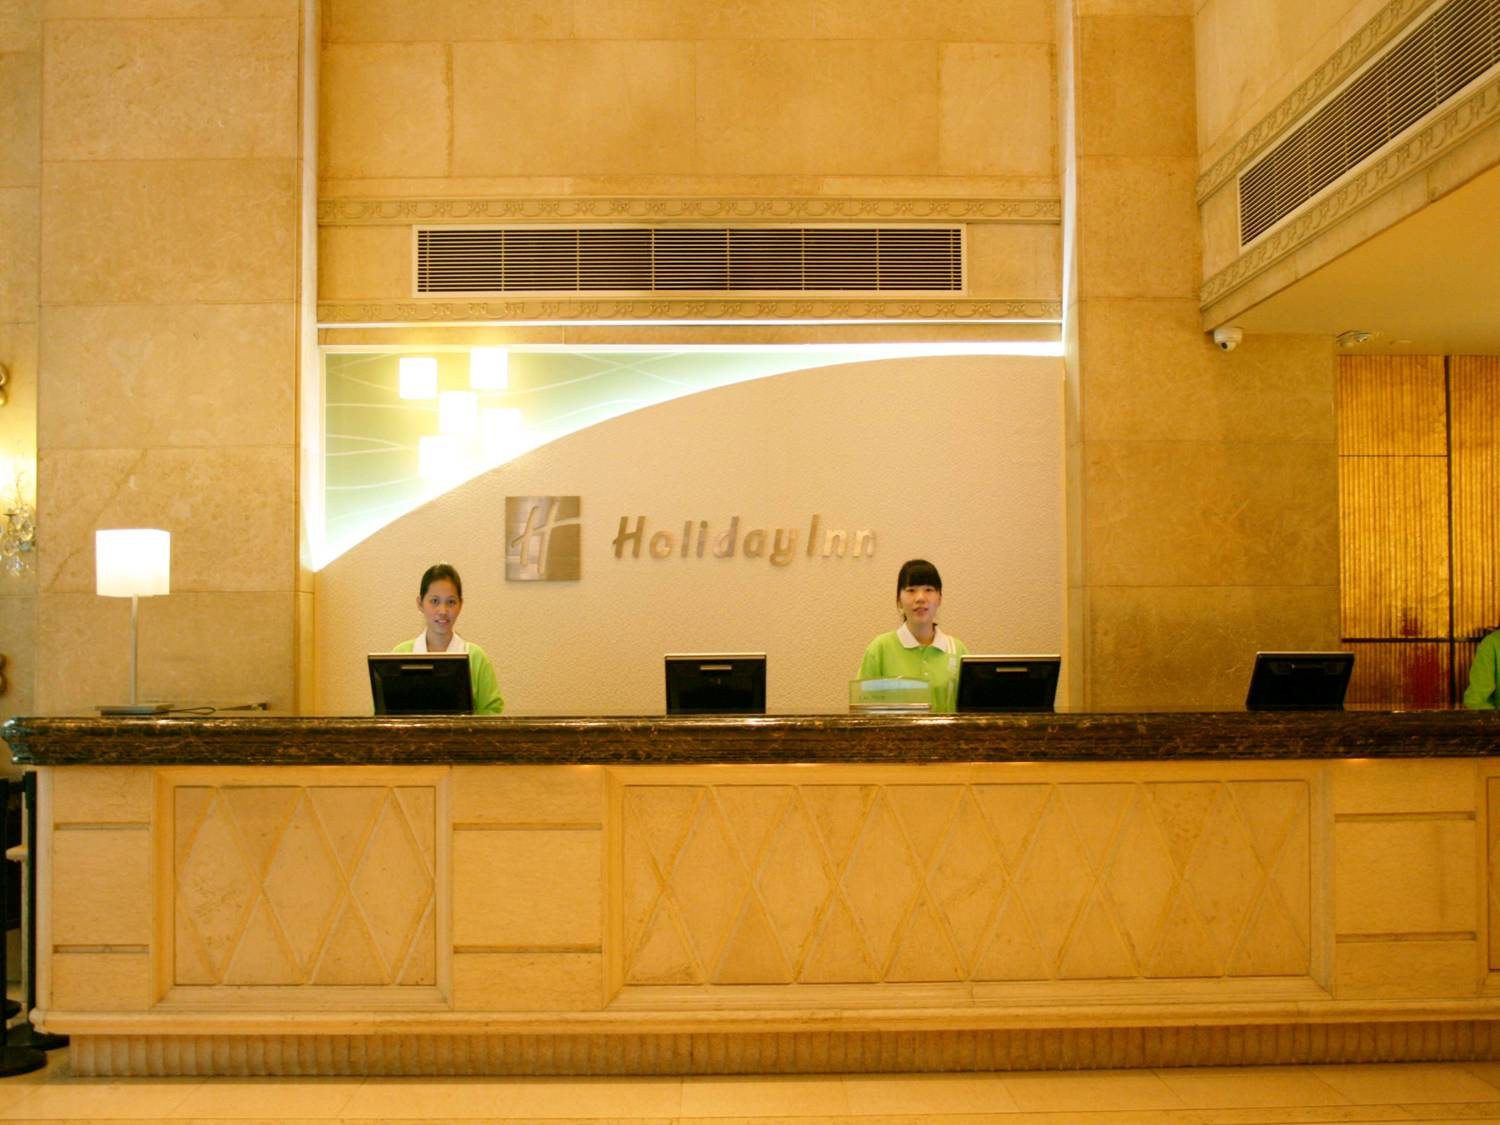 Holiday Inn Hotel Macau